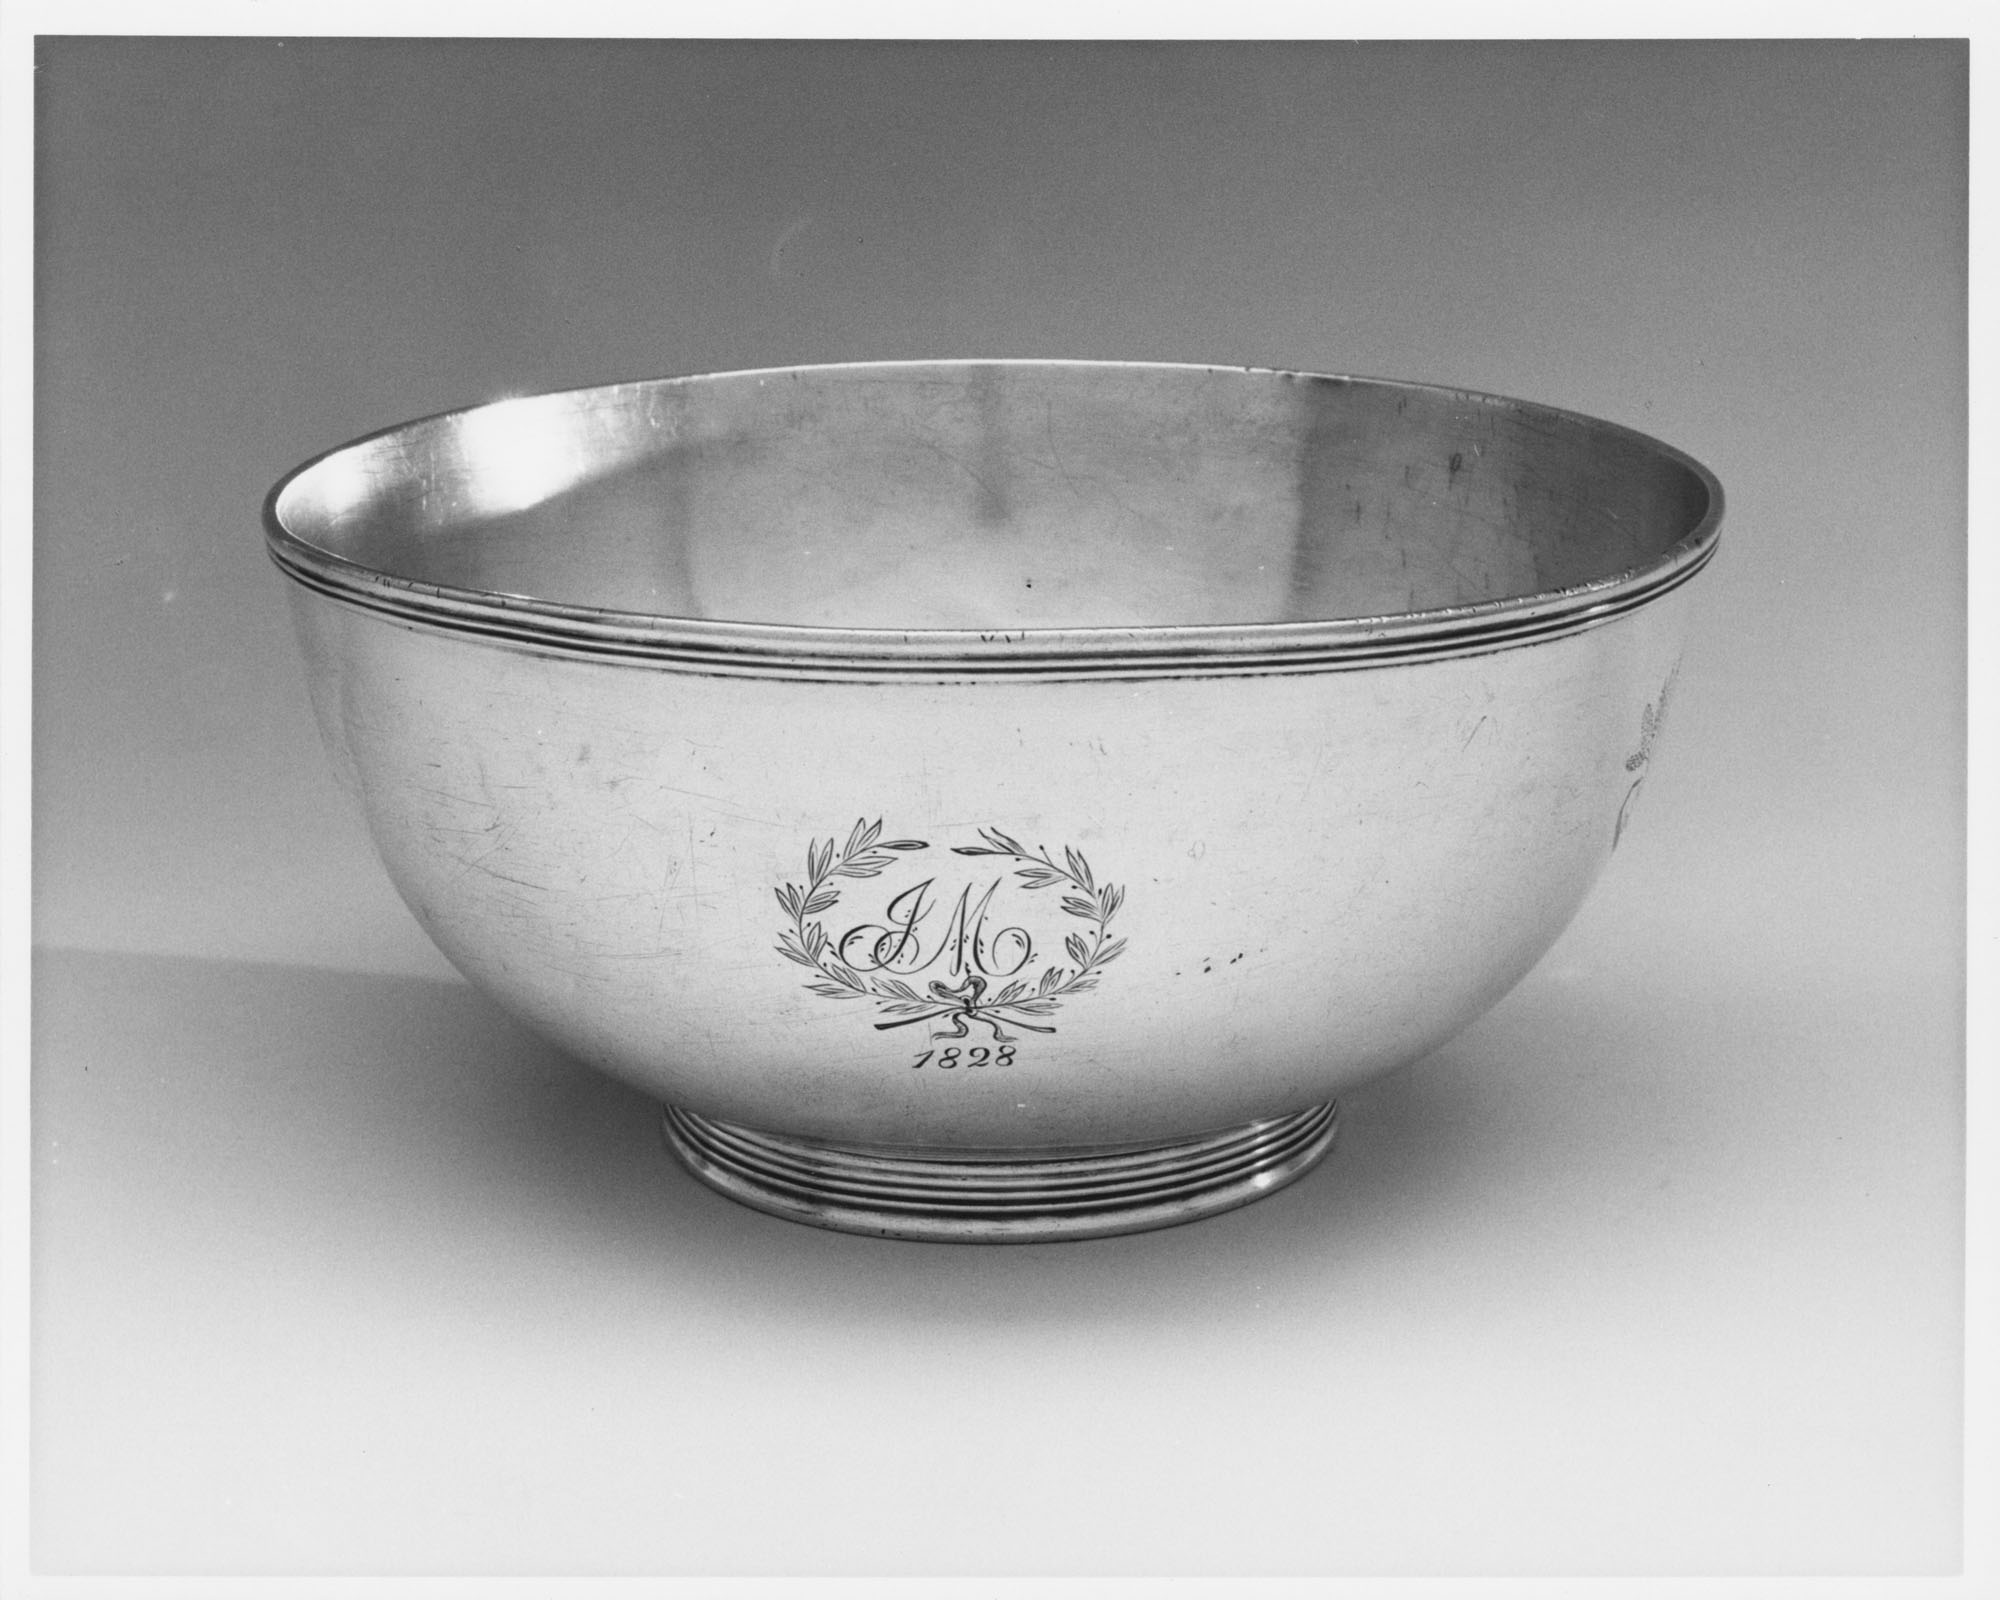 Punch Bowl with Engraved Laurel and Initials